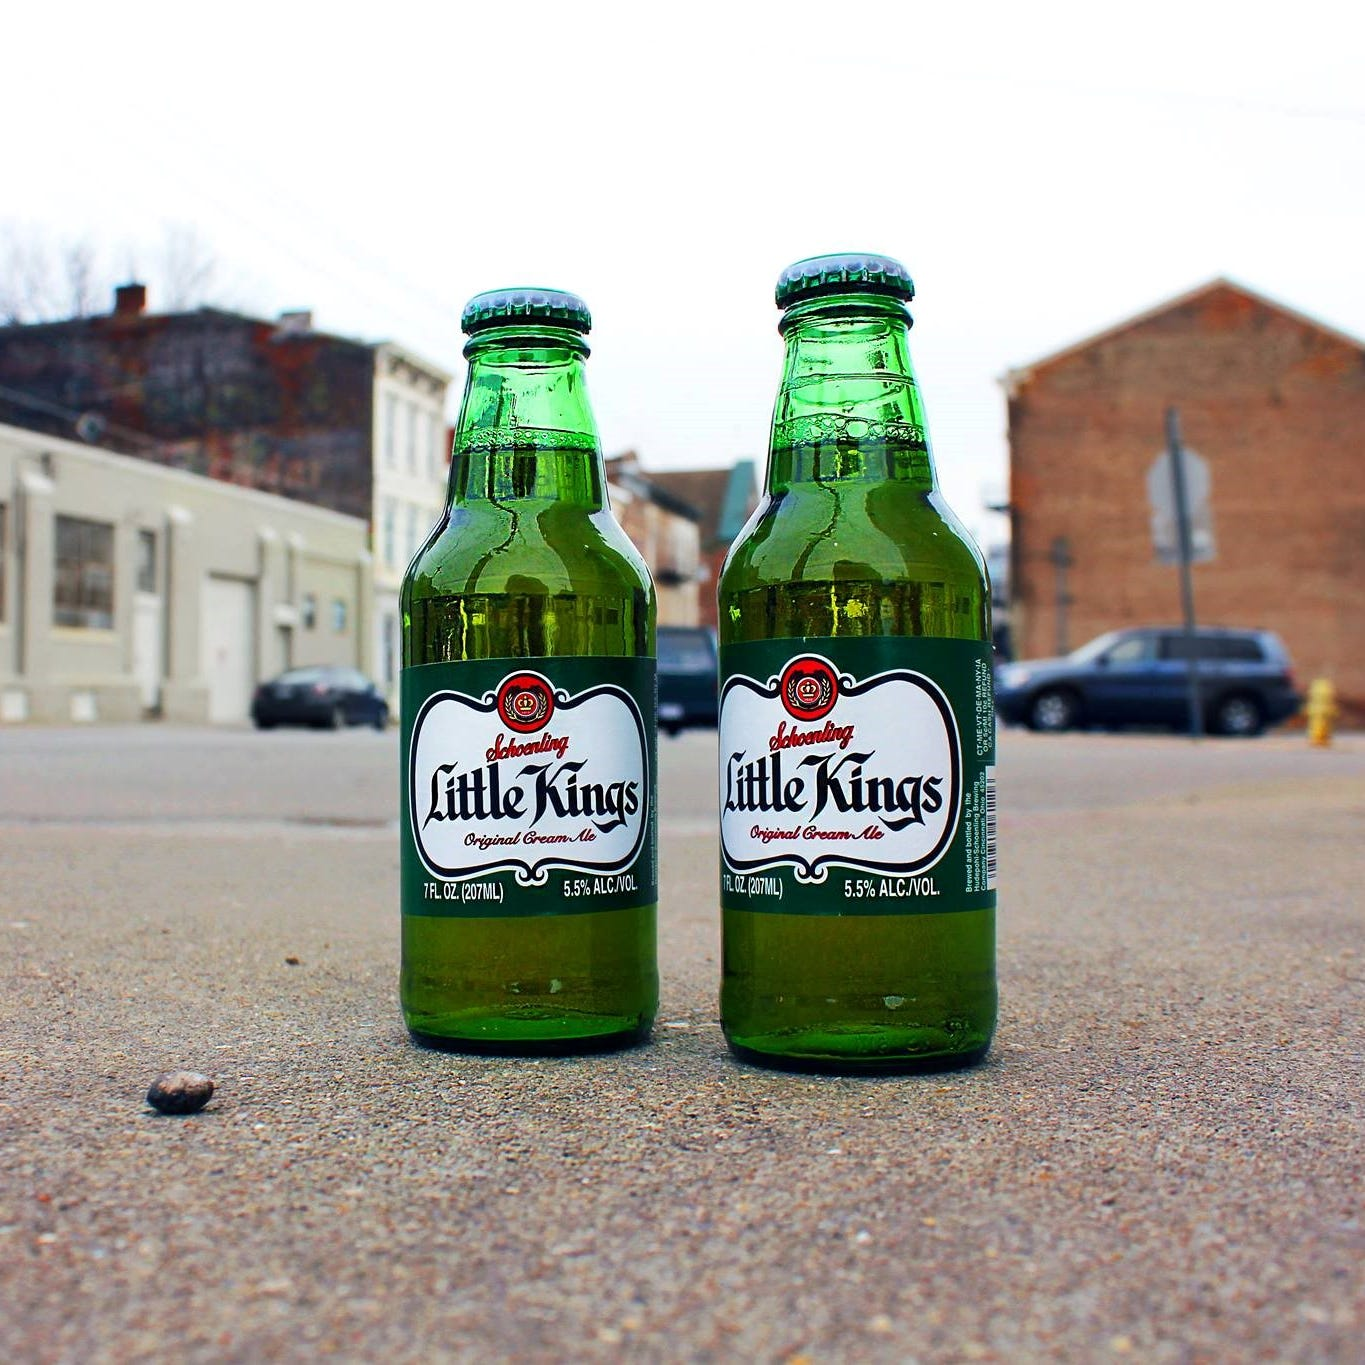 Everyone has a story about Little Kings, Cincinnati's favorite 60-year-old beer